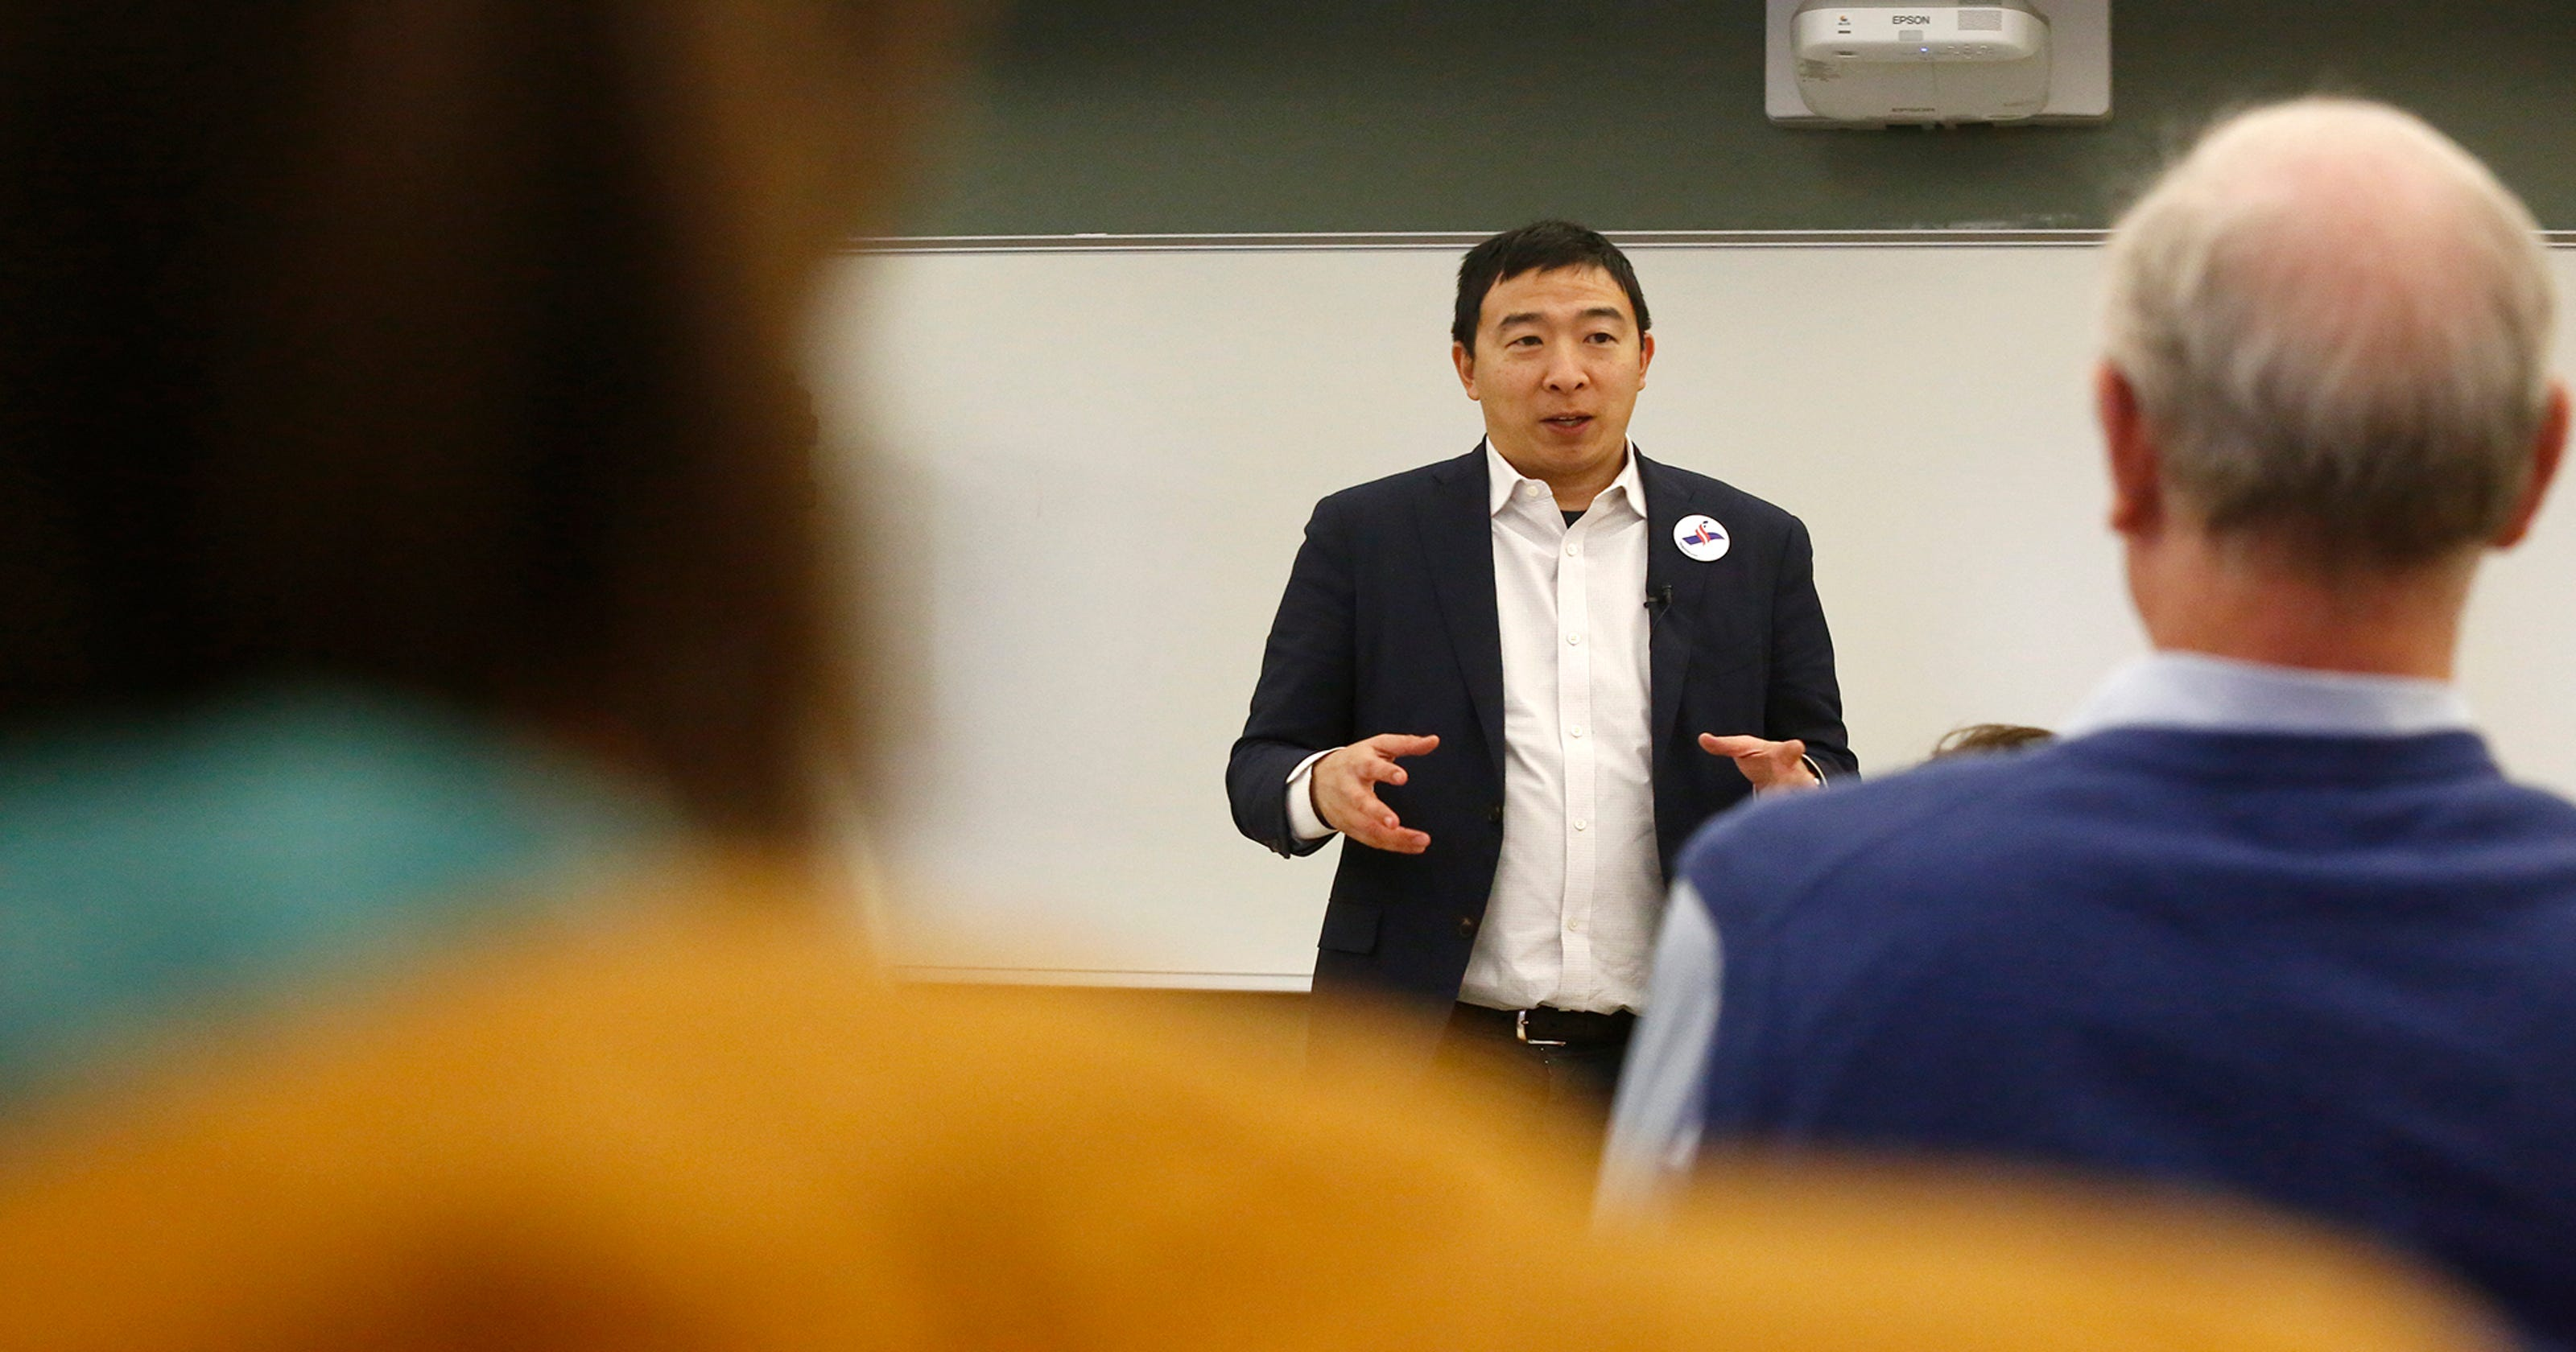 Andrew Yang in Iowa: 'How much do you know about me? Almost nothing? Terrific.'